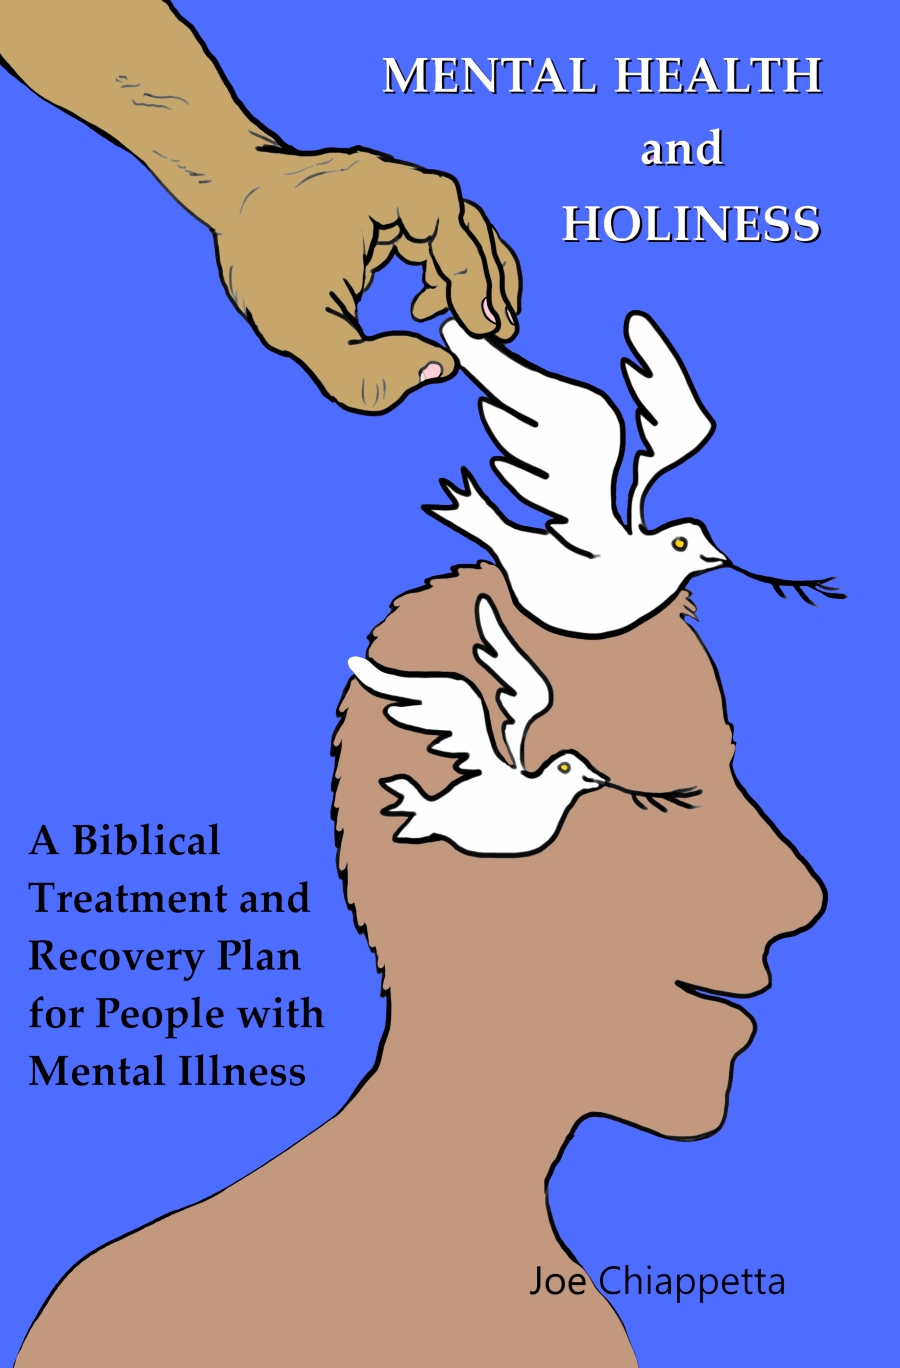 Mental Health and Holiness book ordering page